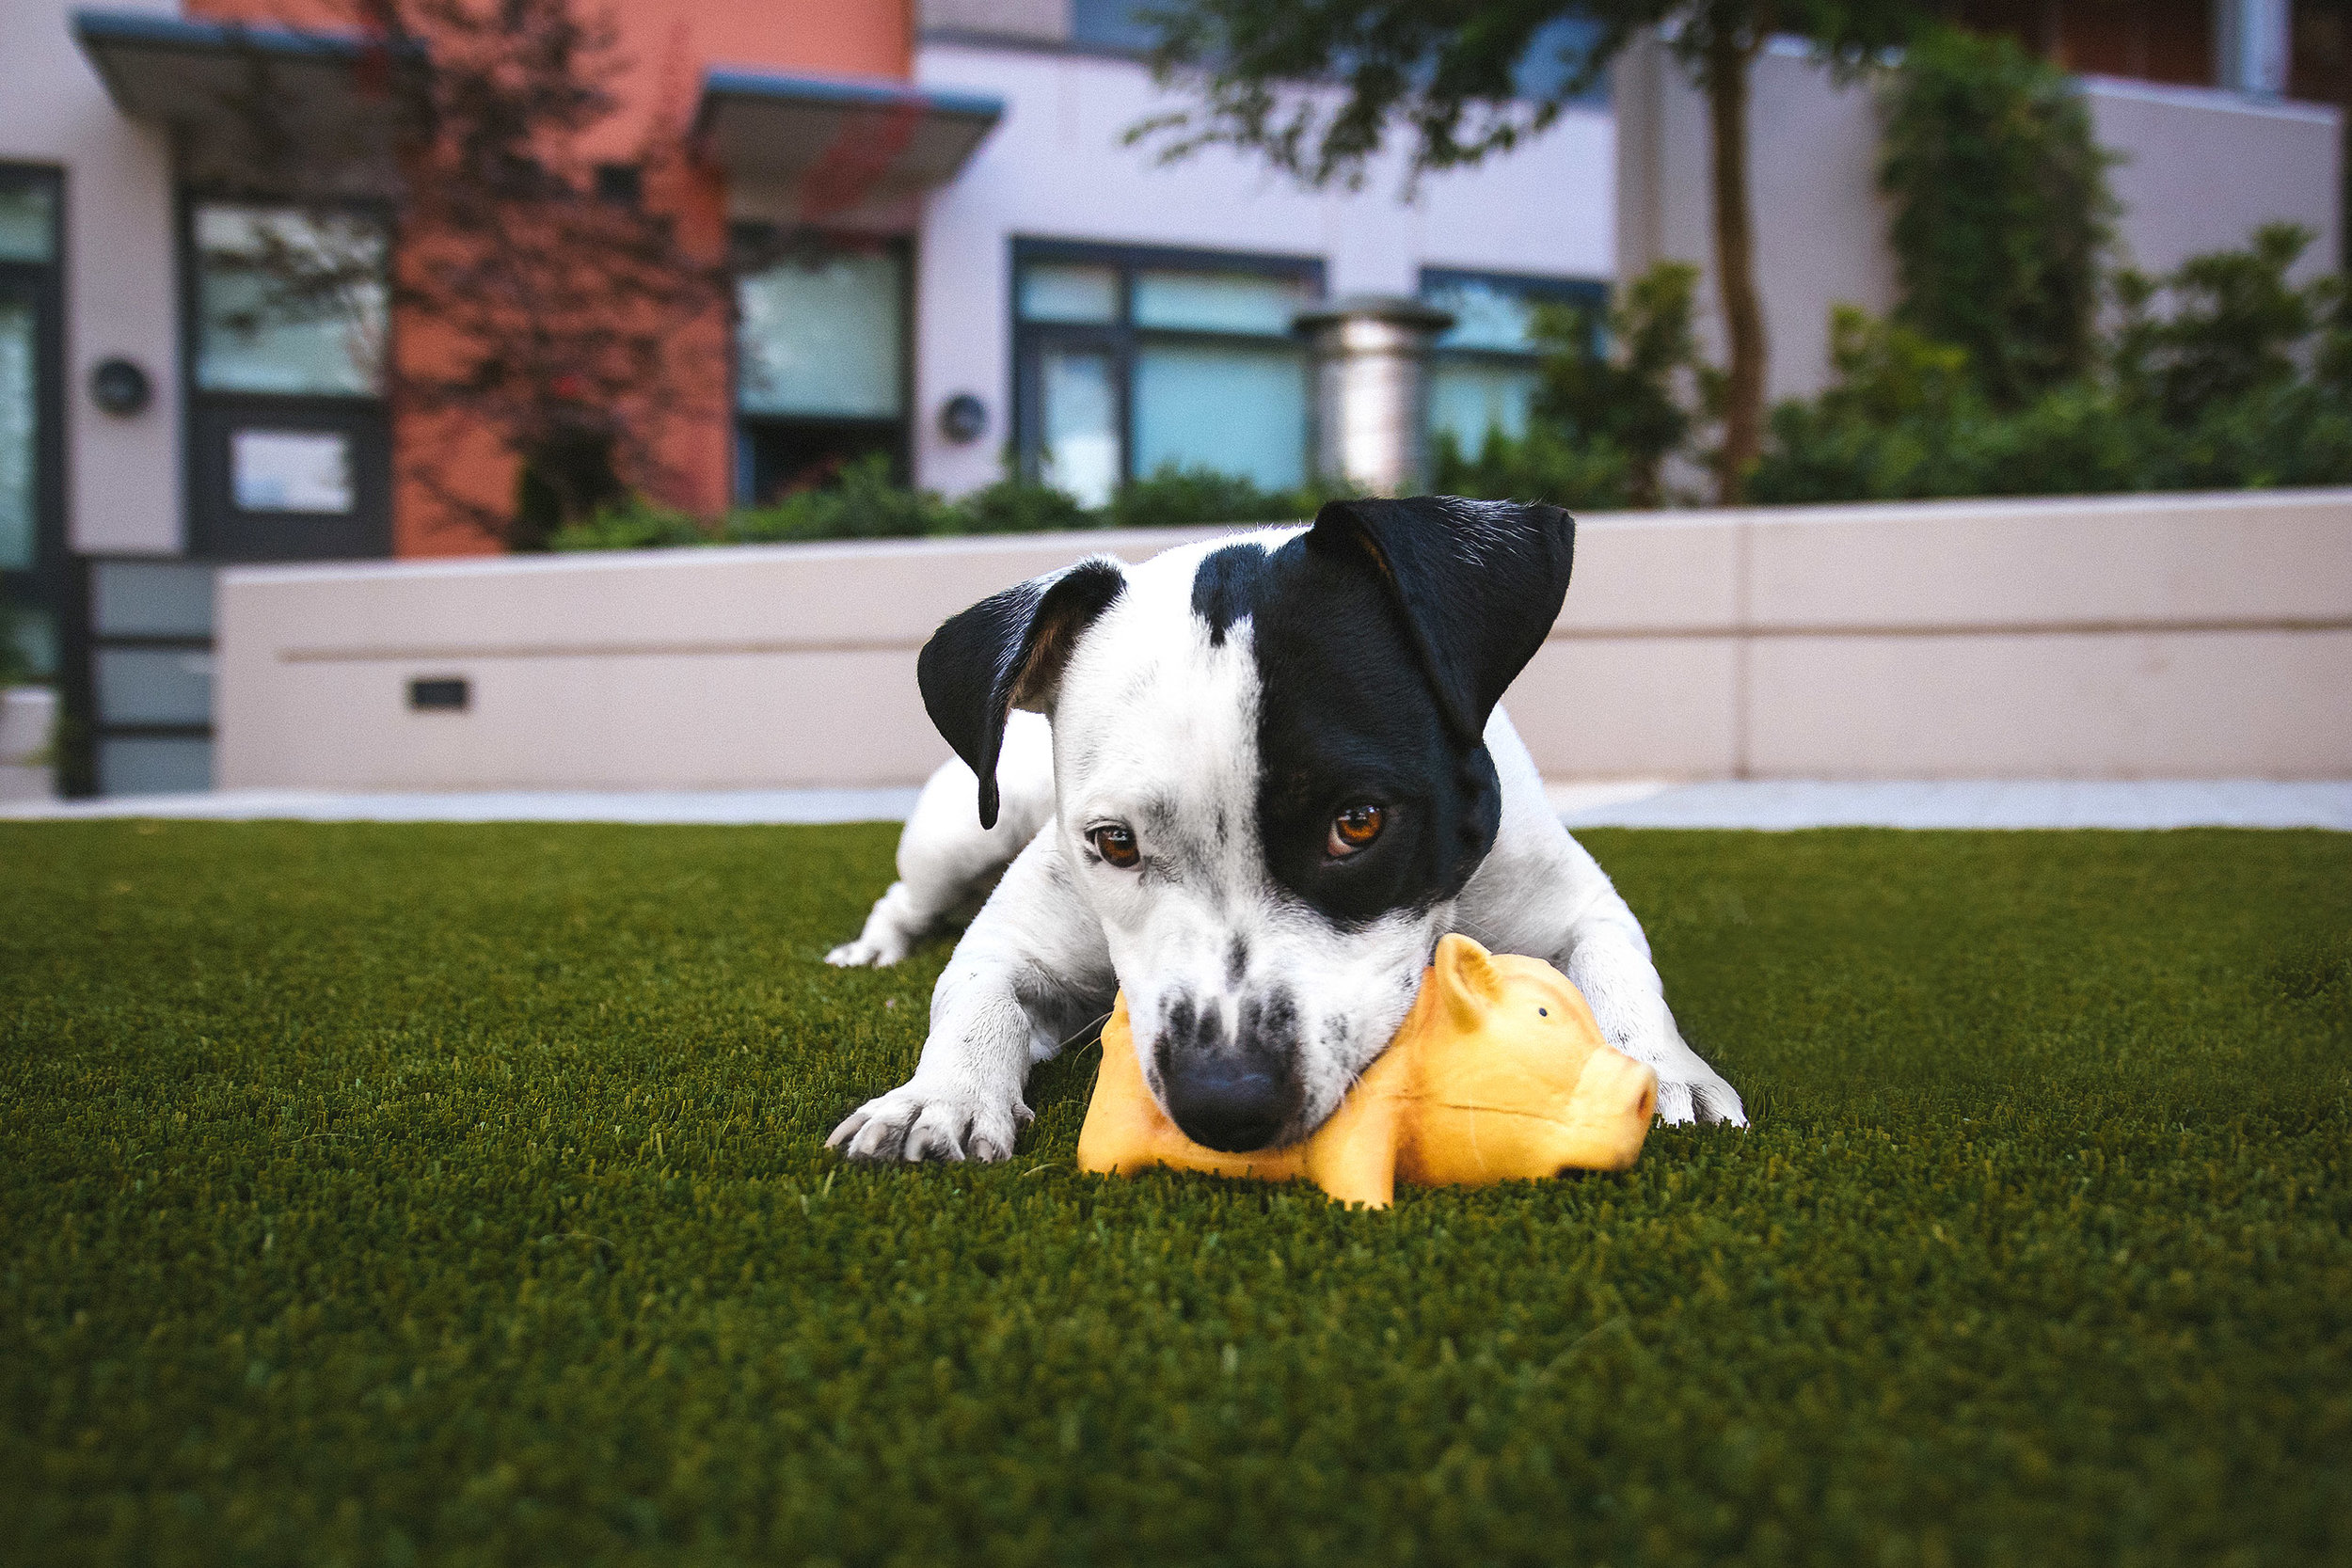 Daycare - Let daycare come to you! Companionship and exercise during the day helps your dog stay healthy and feel happy. We'll play fetch, tug-of-war, everything that gets your dog excited like a puppy again.